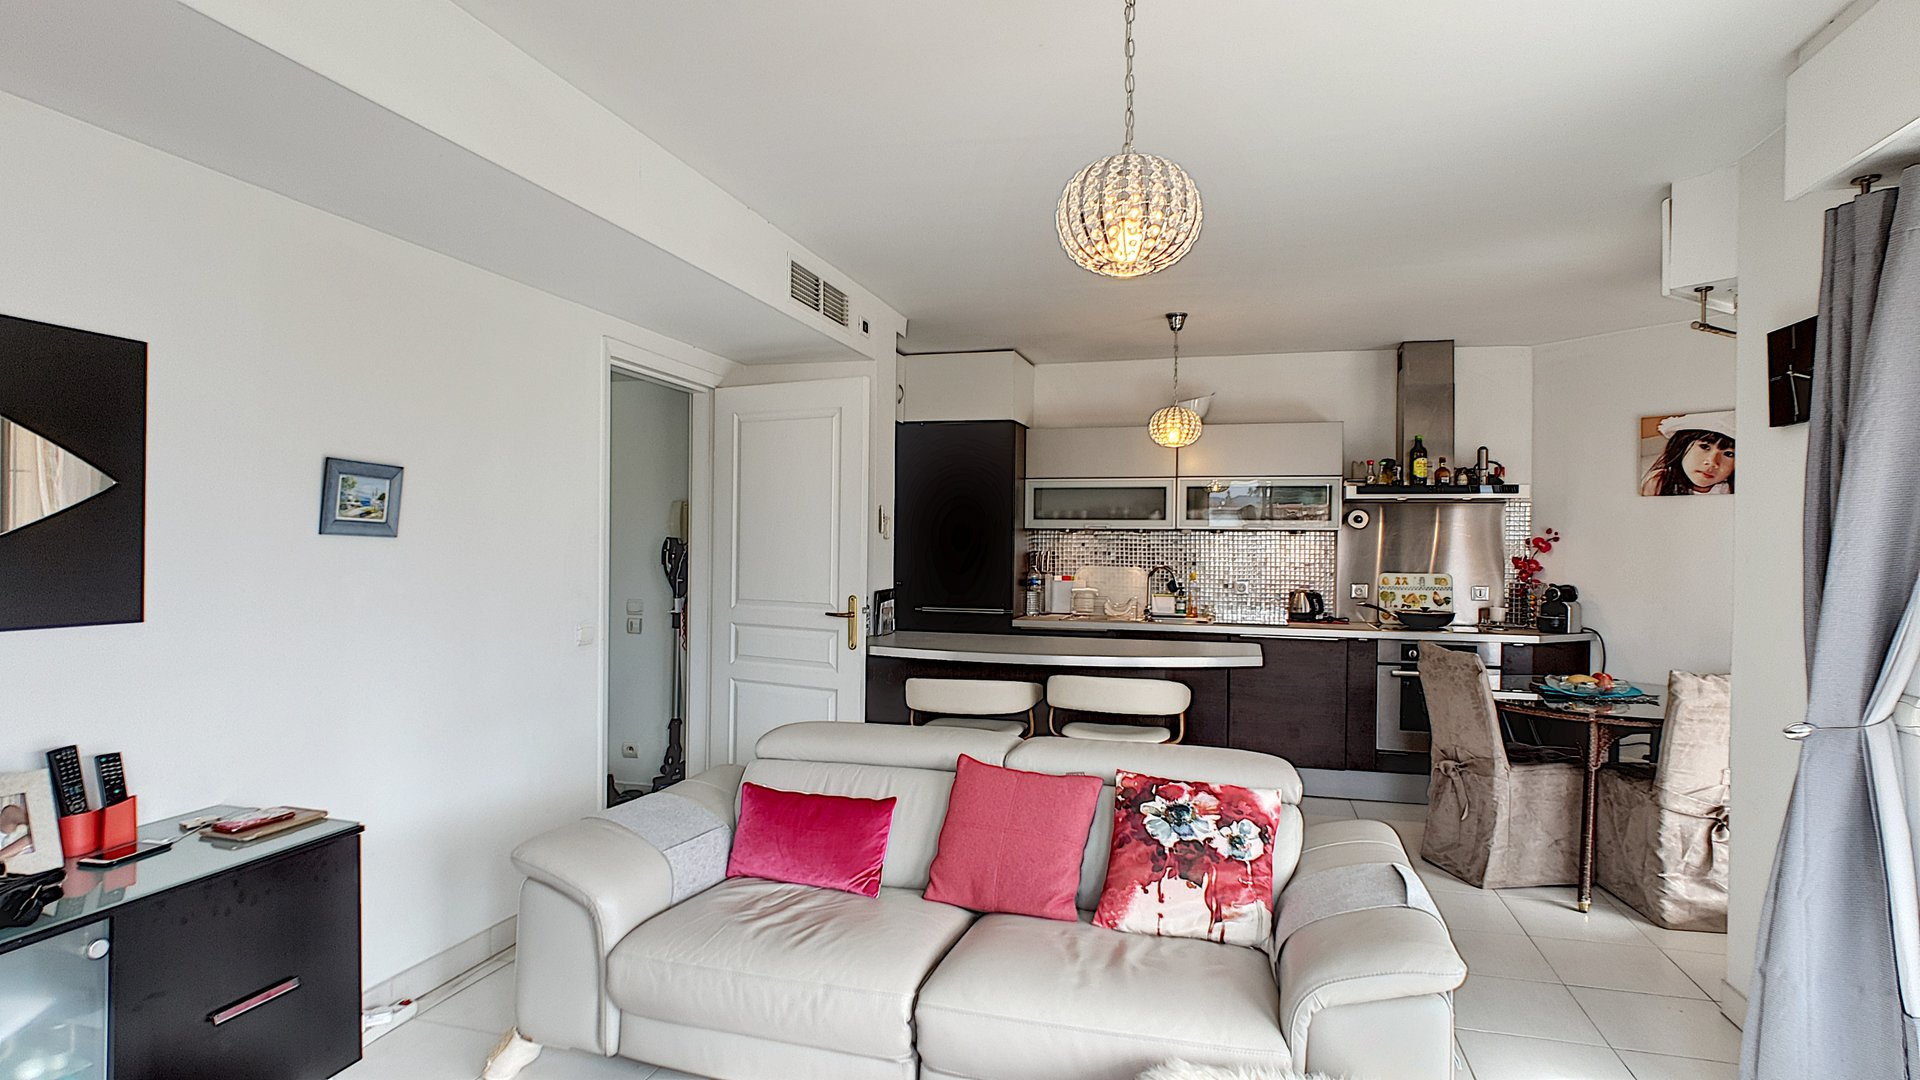 Two bedroom flat for sale in Cannes Californie